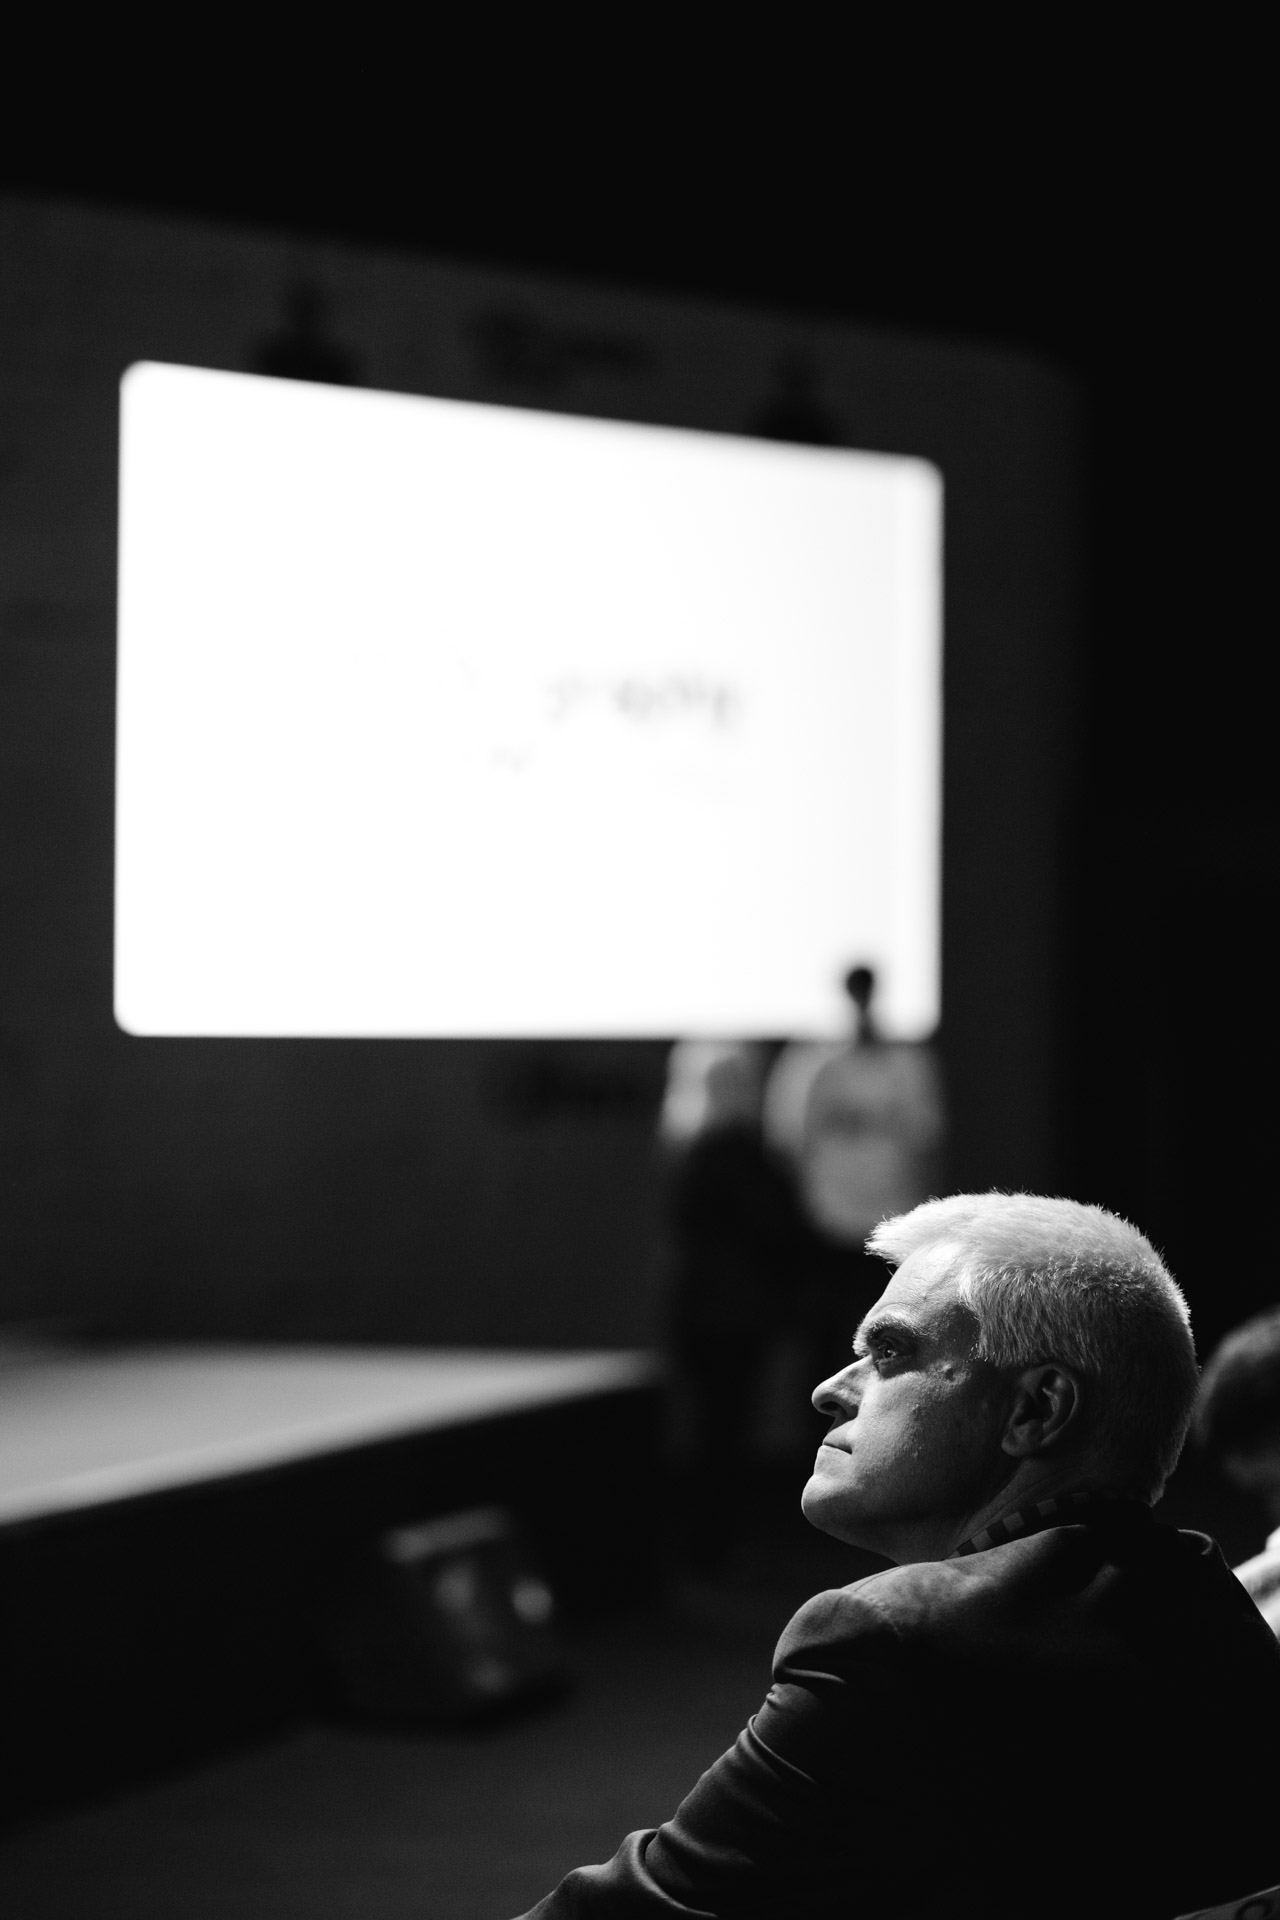 Jon Bentley eyeing up the projection screens and lighting while waiting for Martin Parr's talk at the Super Stage.